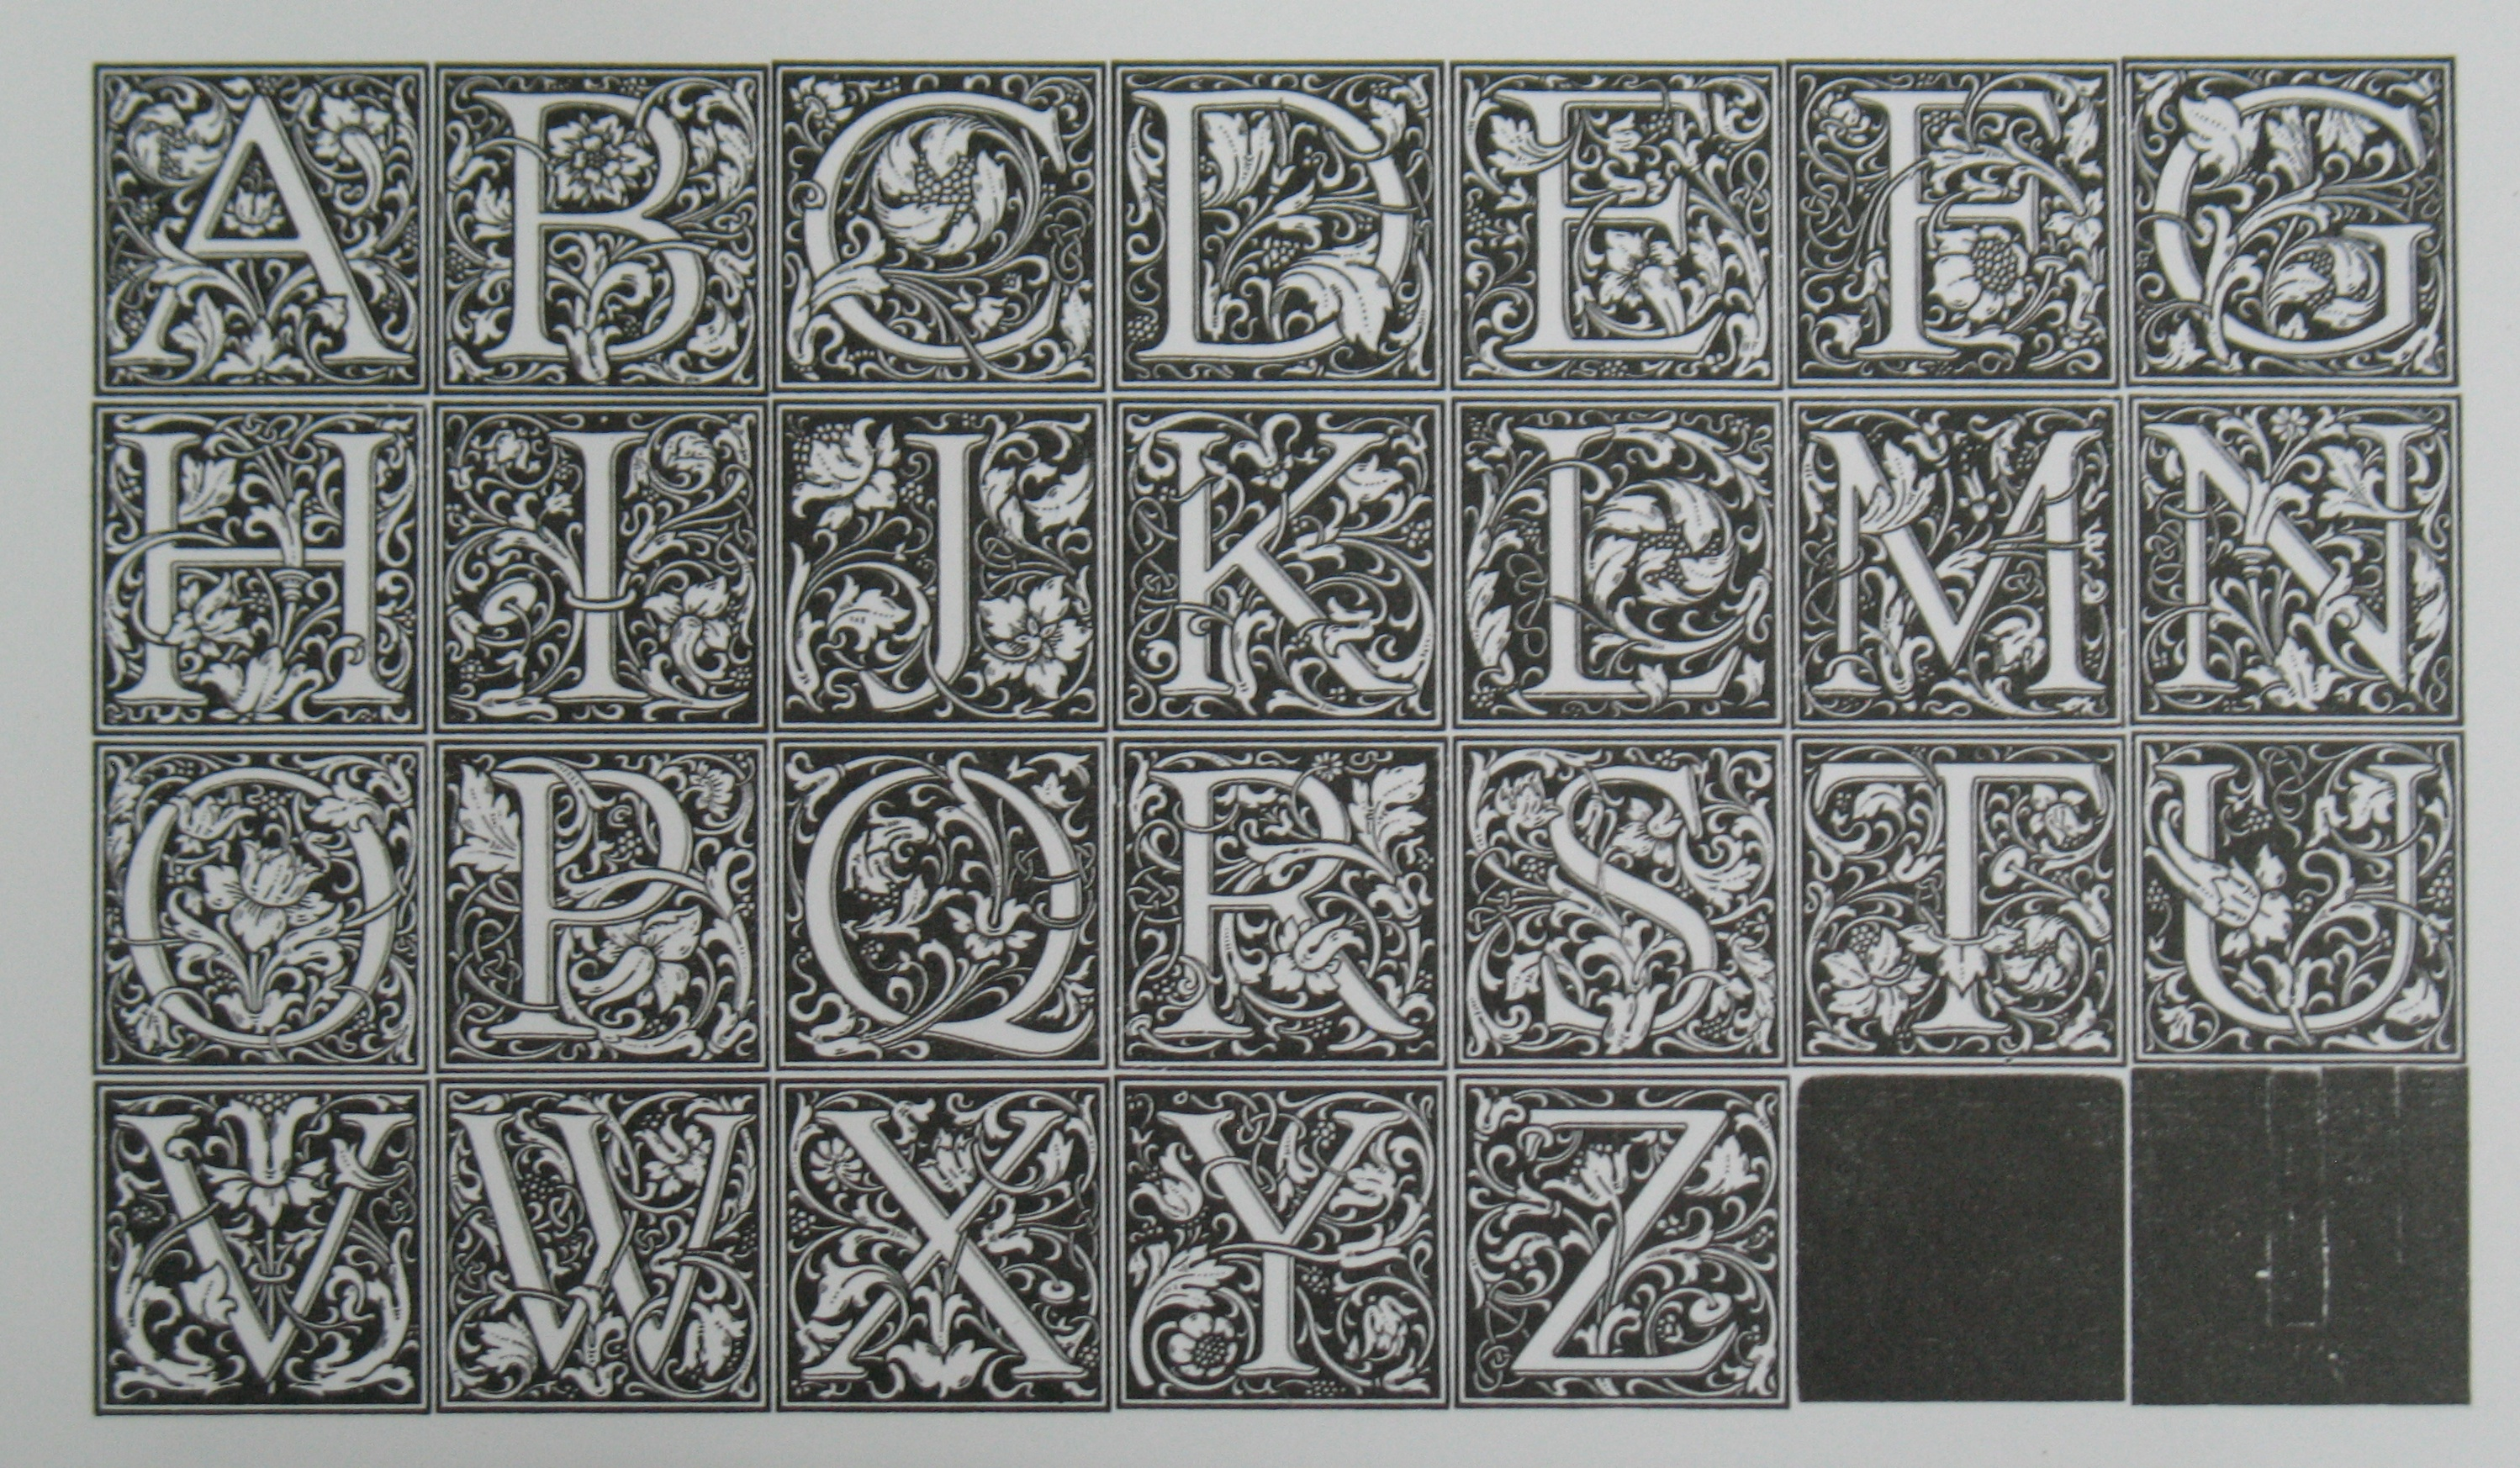 A proof of the Cloister Initials.